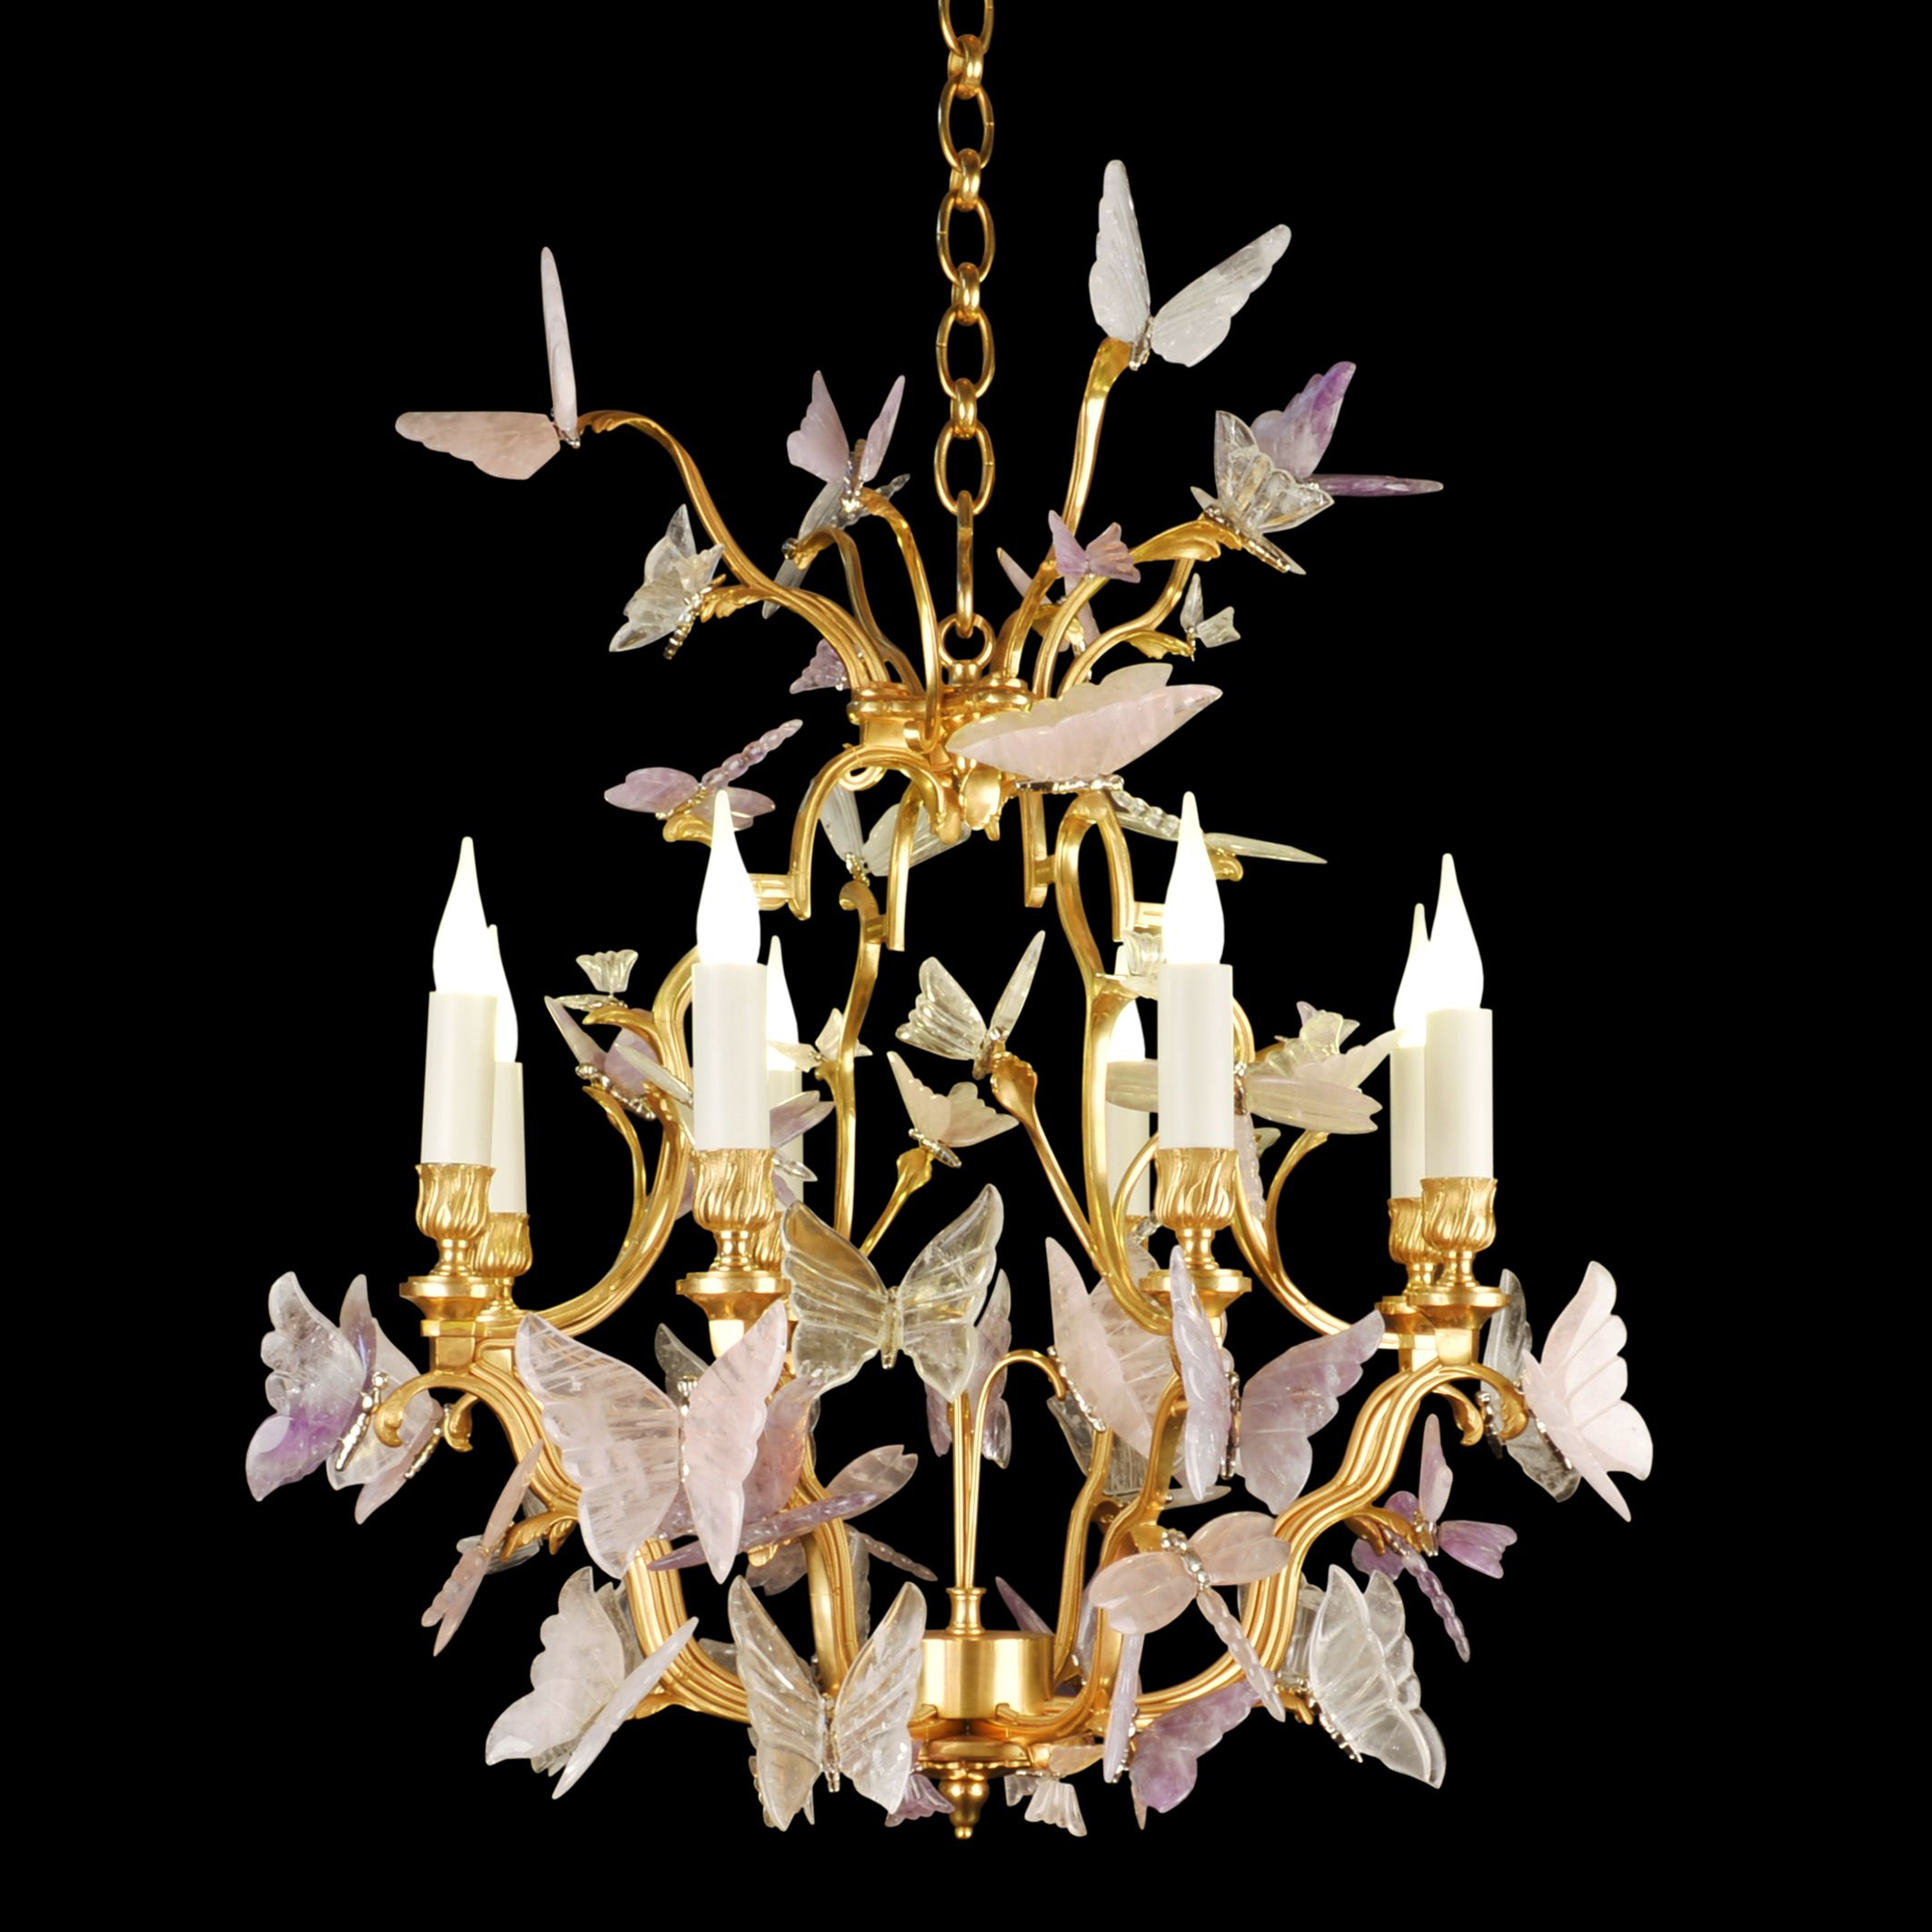 Pin by tisserant art style on chandelier 24 k finish on bronze amethyst chandelier bronze crystal luminaire mozeypictures Gallery